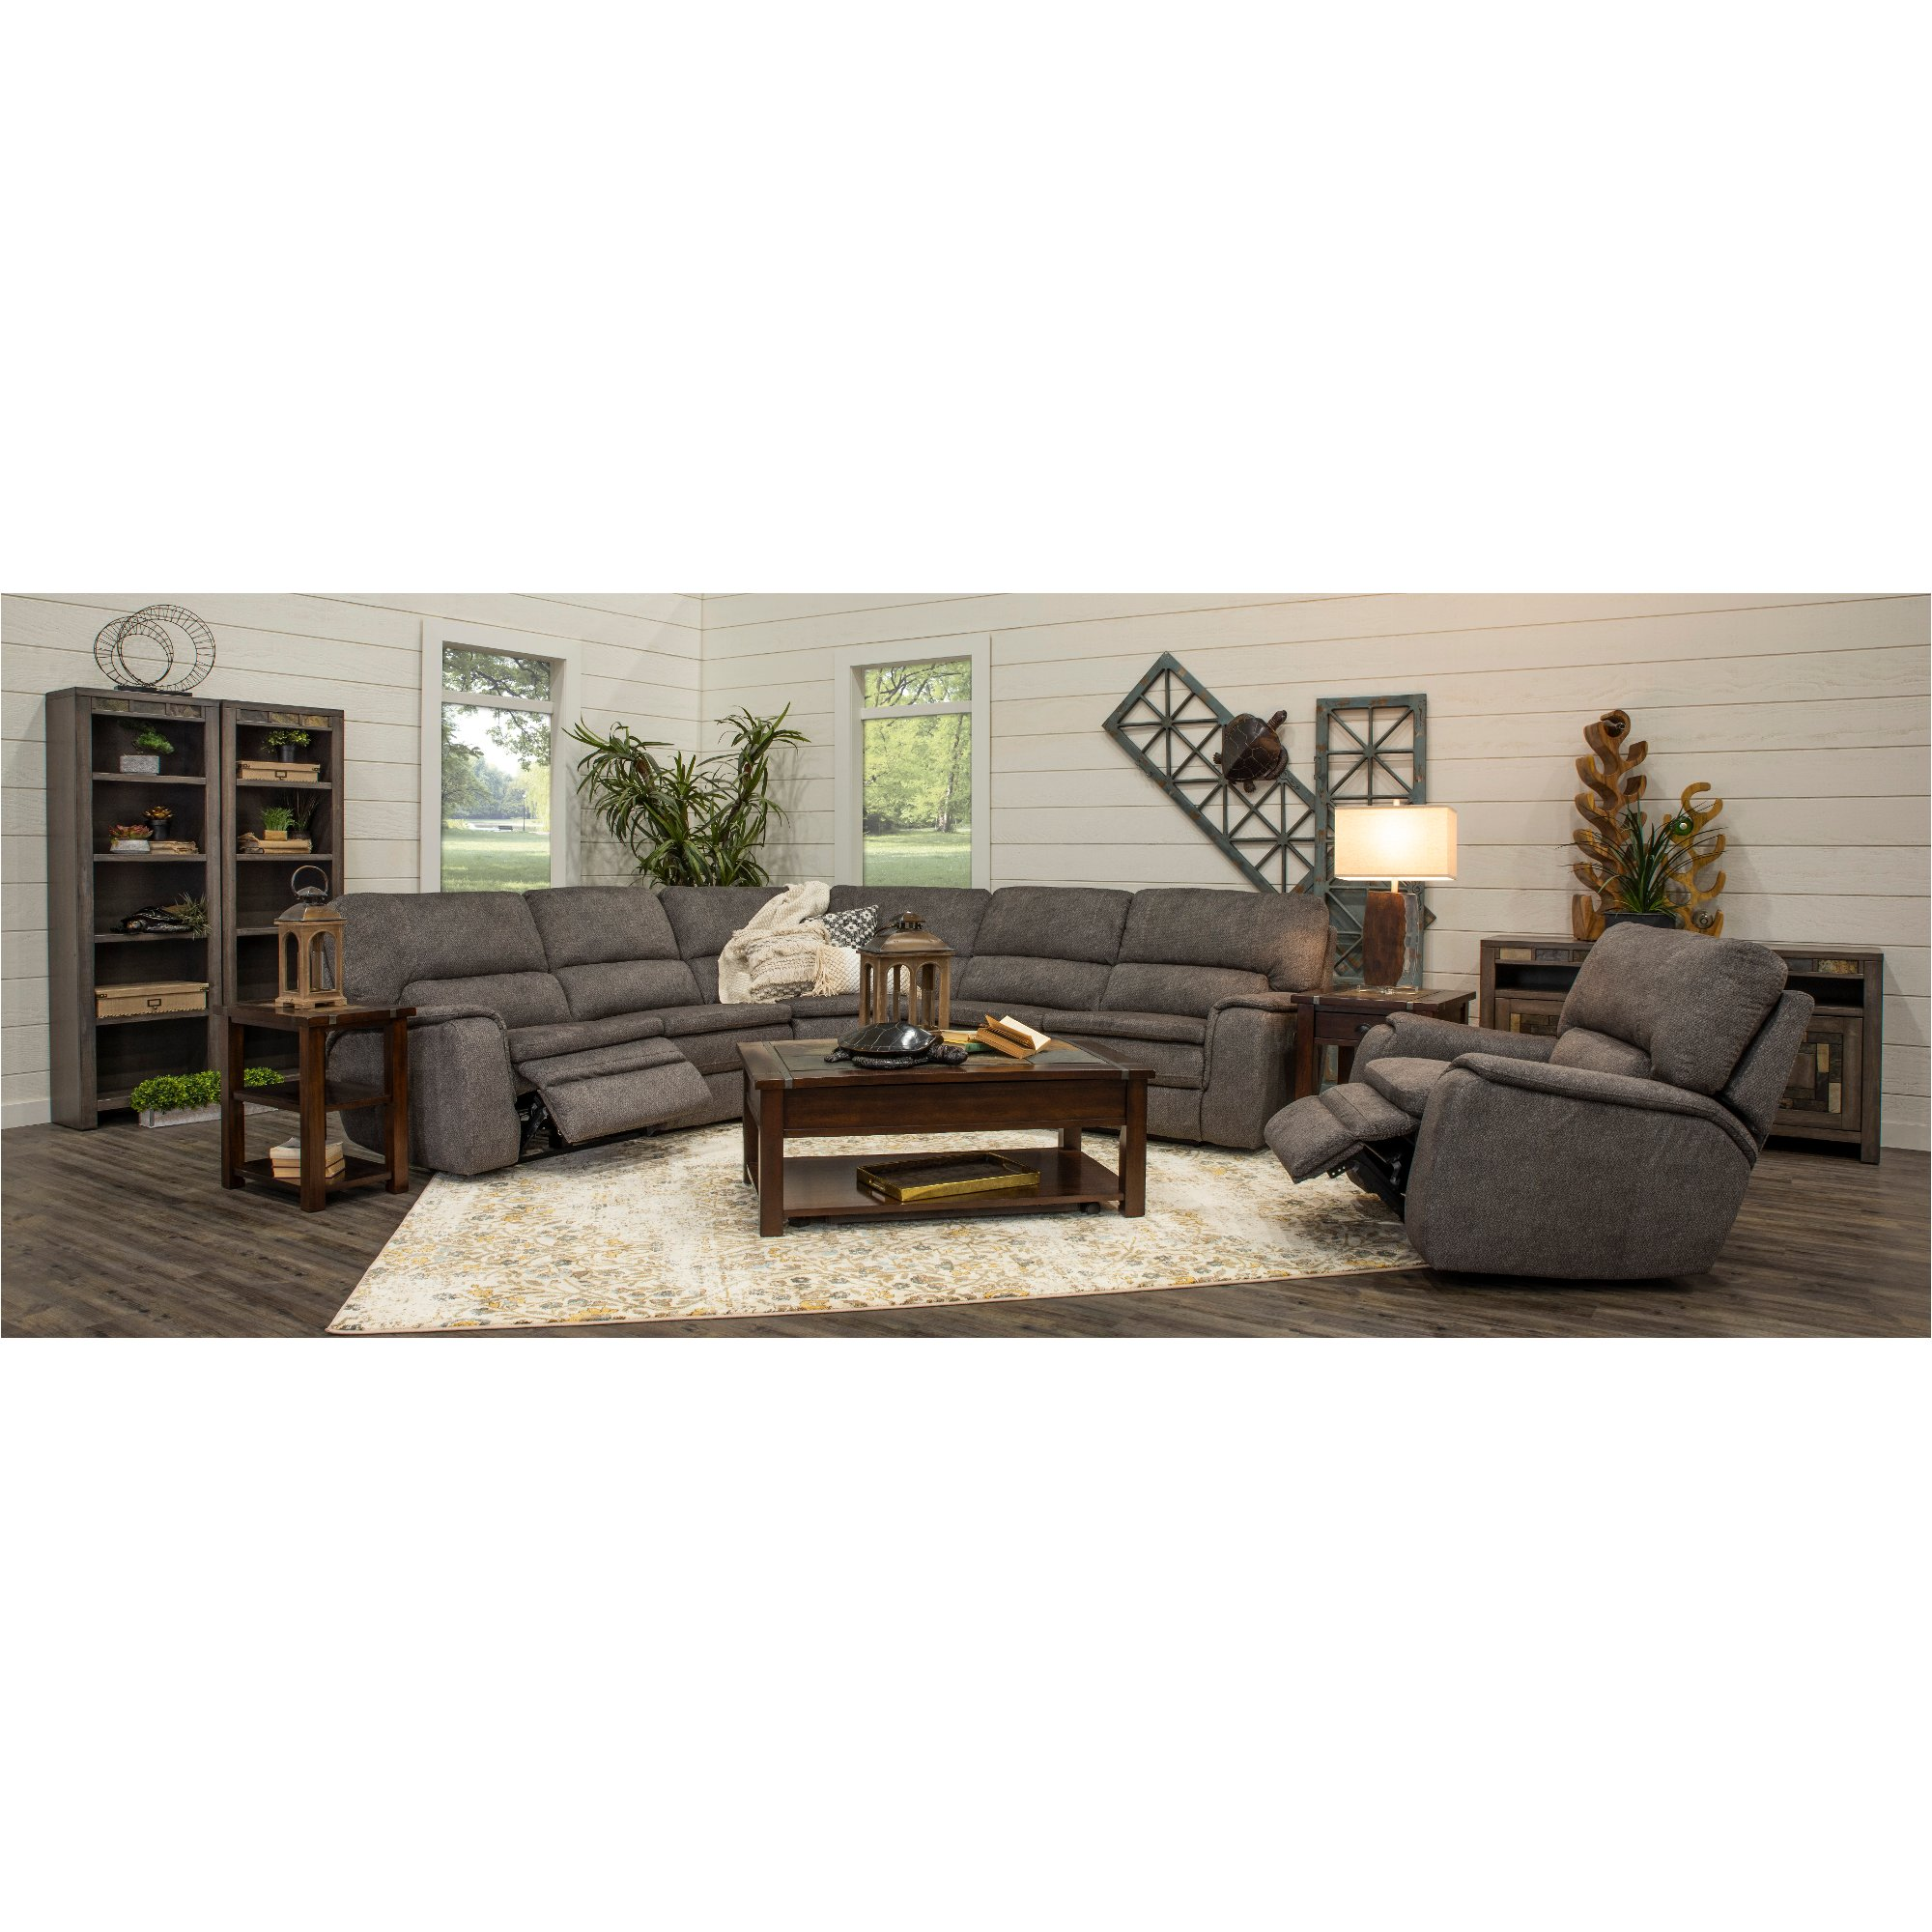 Outstanding Silver Gray 5 Piece Power Reclining Sectional Sofa Cyprus Pdpeps Interior Chair Design Pdpepsorg